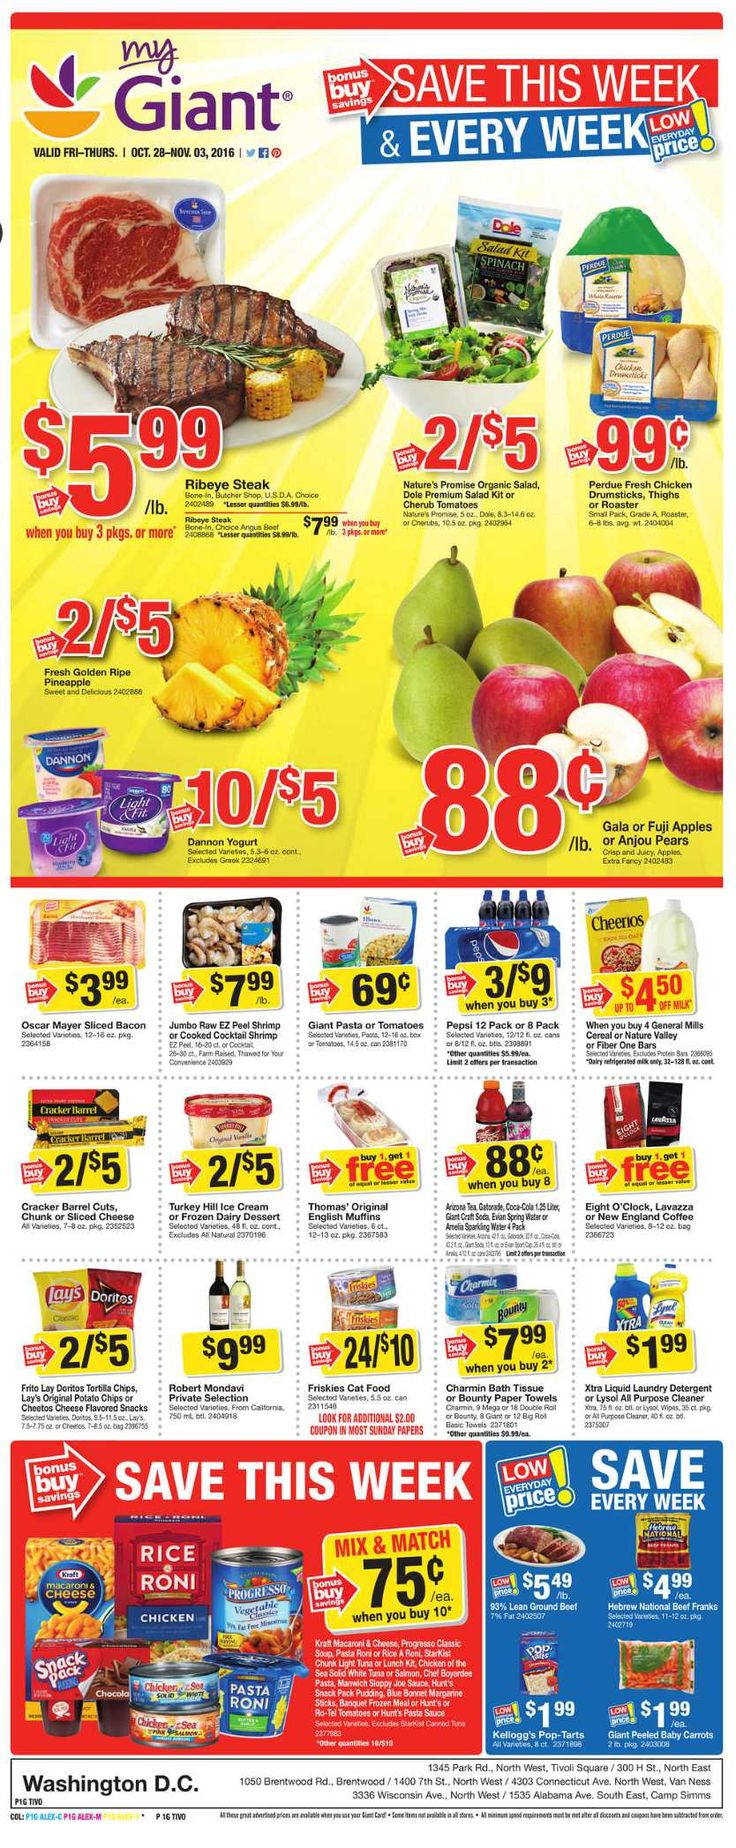 Giant Food Weekly Ad October 28 - November 3, 2016 - http://www.olcatalog.com/grocery/giant-food-weekly-ad.html